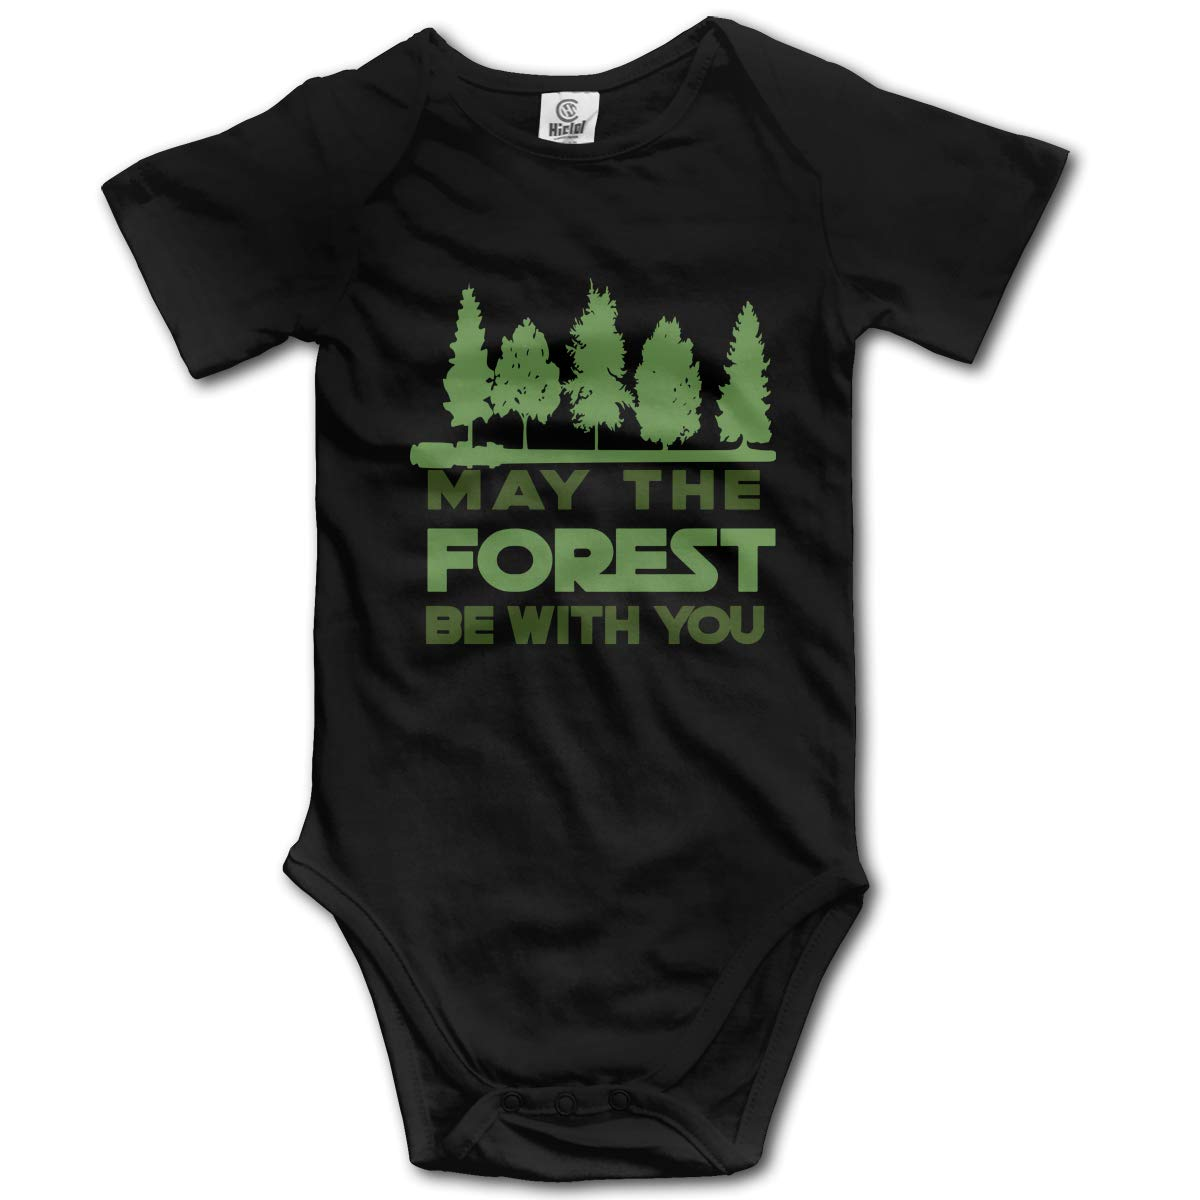 Tbjrk09-9 Short Sleeve Cotton Rompers for Baby Girls Boys Fashion May The Forest BE with You Crawler